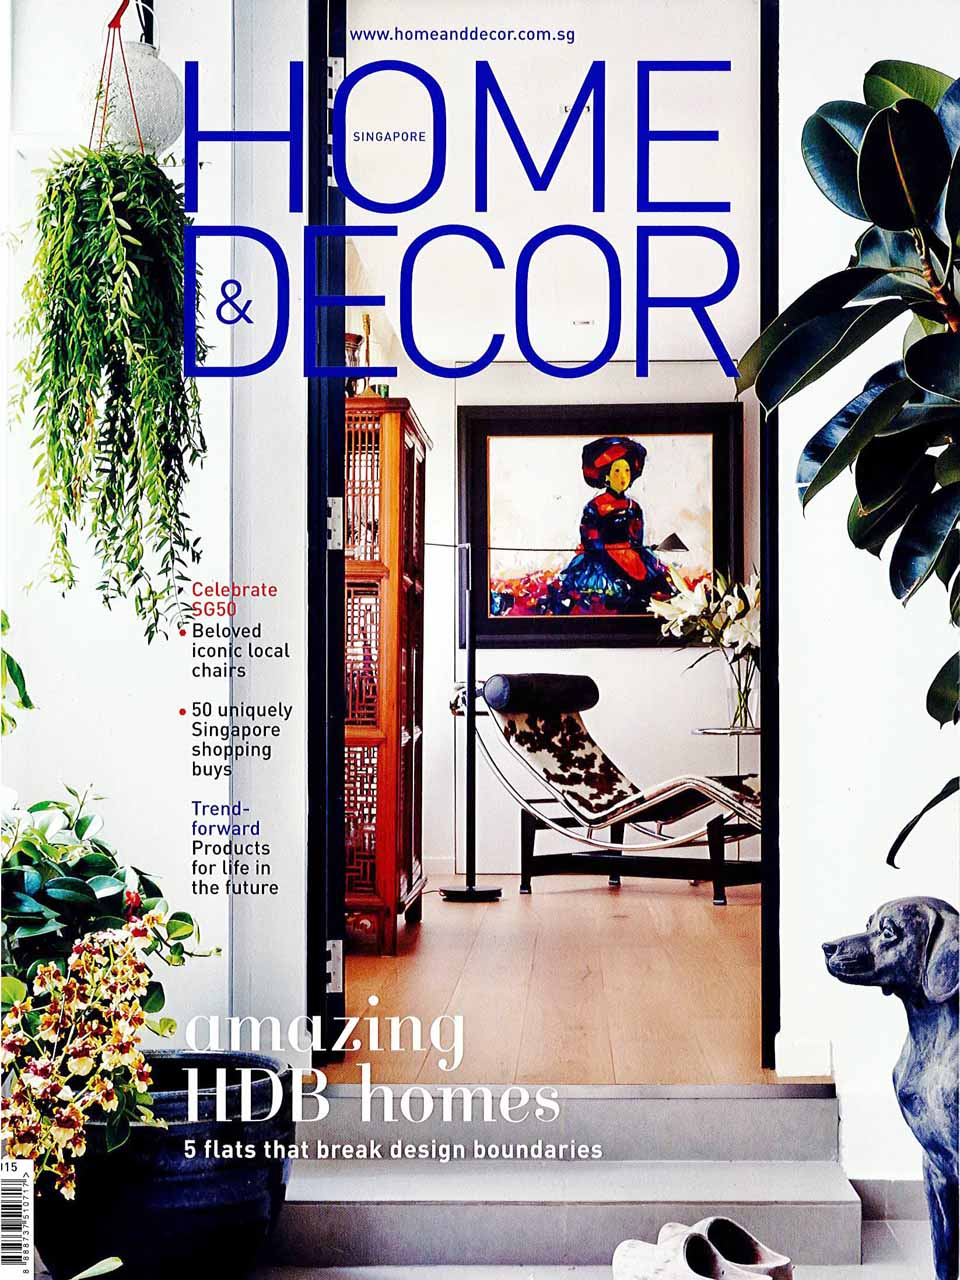 Home & Decor - August 2015 Issue